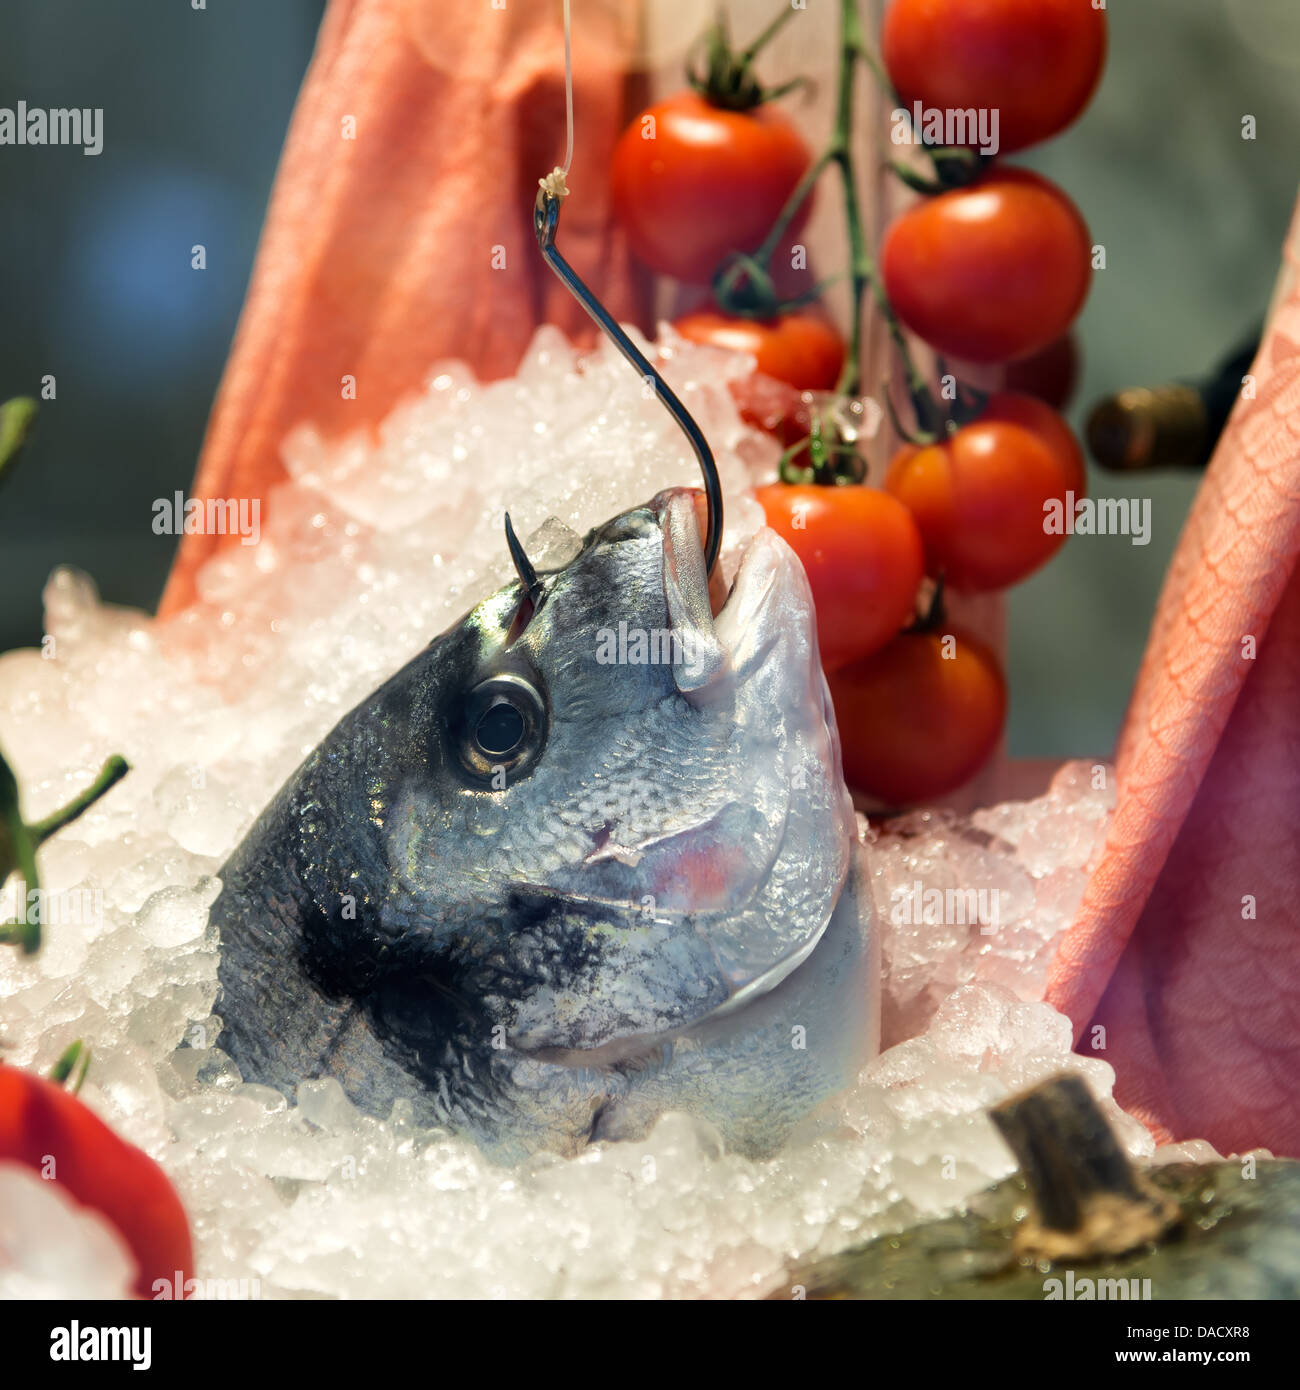 bream fish caught with hook in restaurant Stock Photo